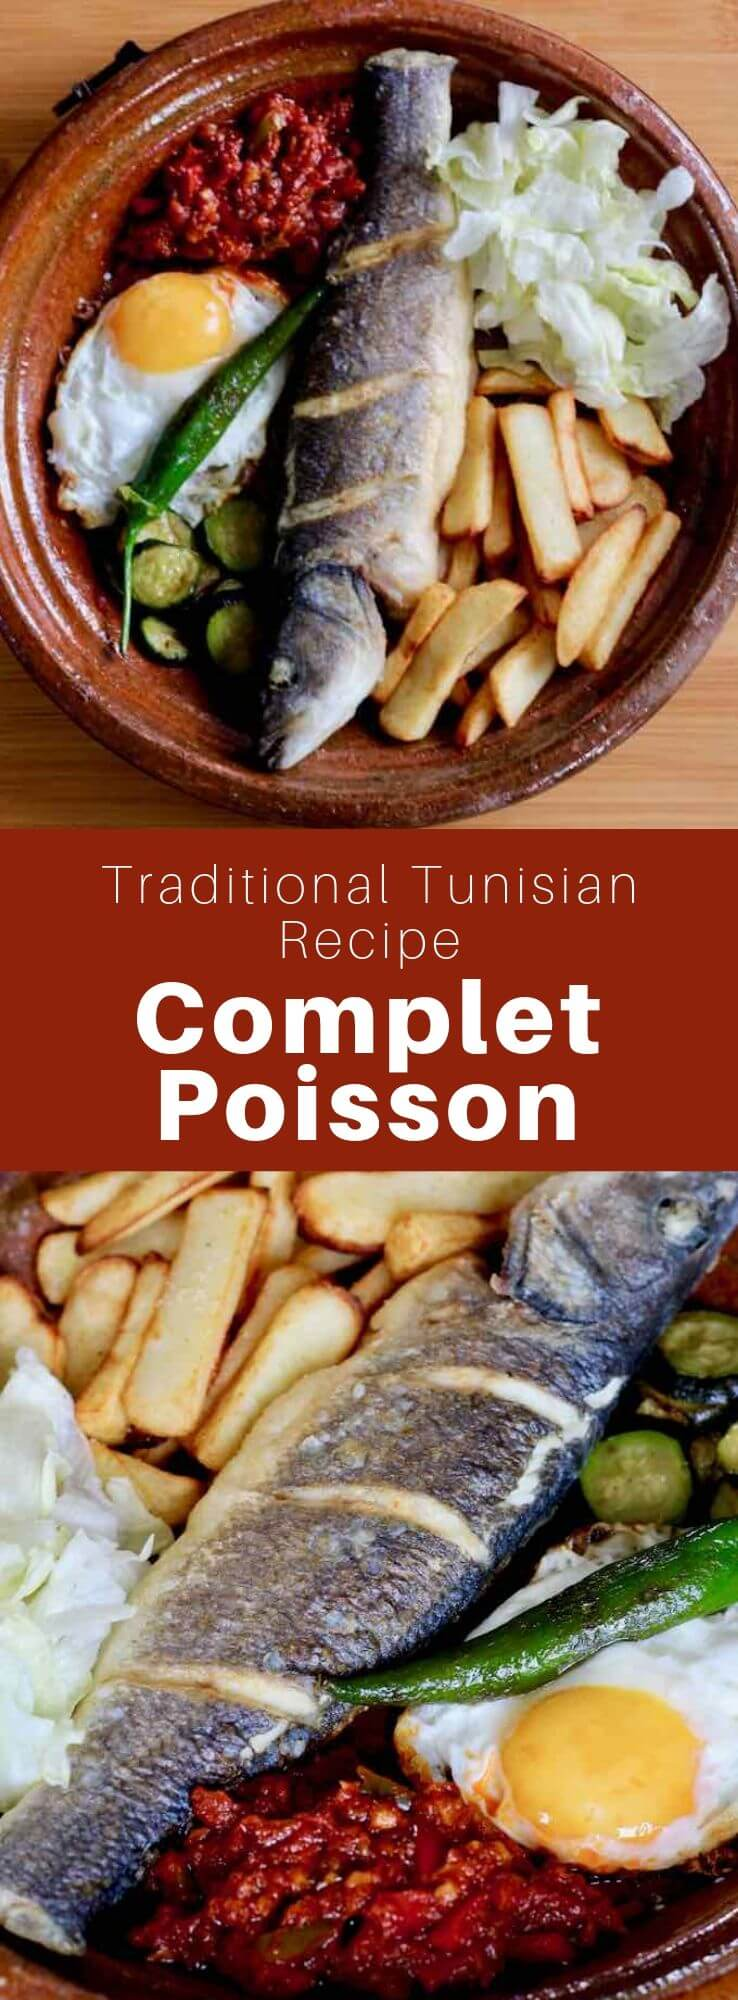 Complet poisson is a popular Tunisian dish consisting of fried or grilled fish, vegetable, fries, tastira or slata méchouia, egg, and pepper. #Tunisia #Tunisian #NorthAfrican #Maghreb #TunisianCuisine #TunisianRecipe #NorthAfricanRecipe #WorldCuisine #196flavors